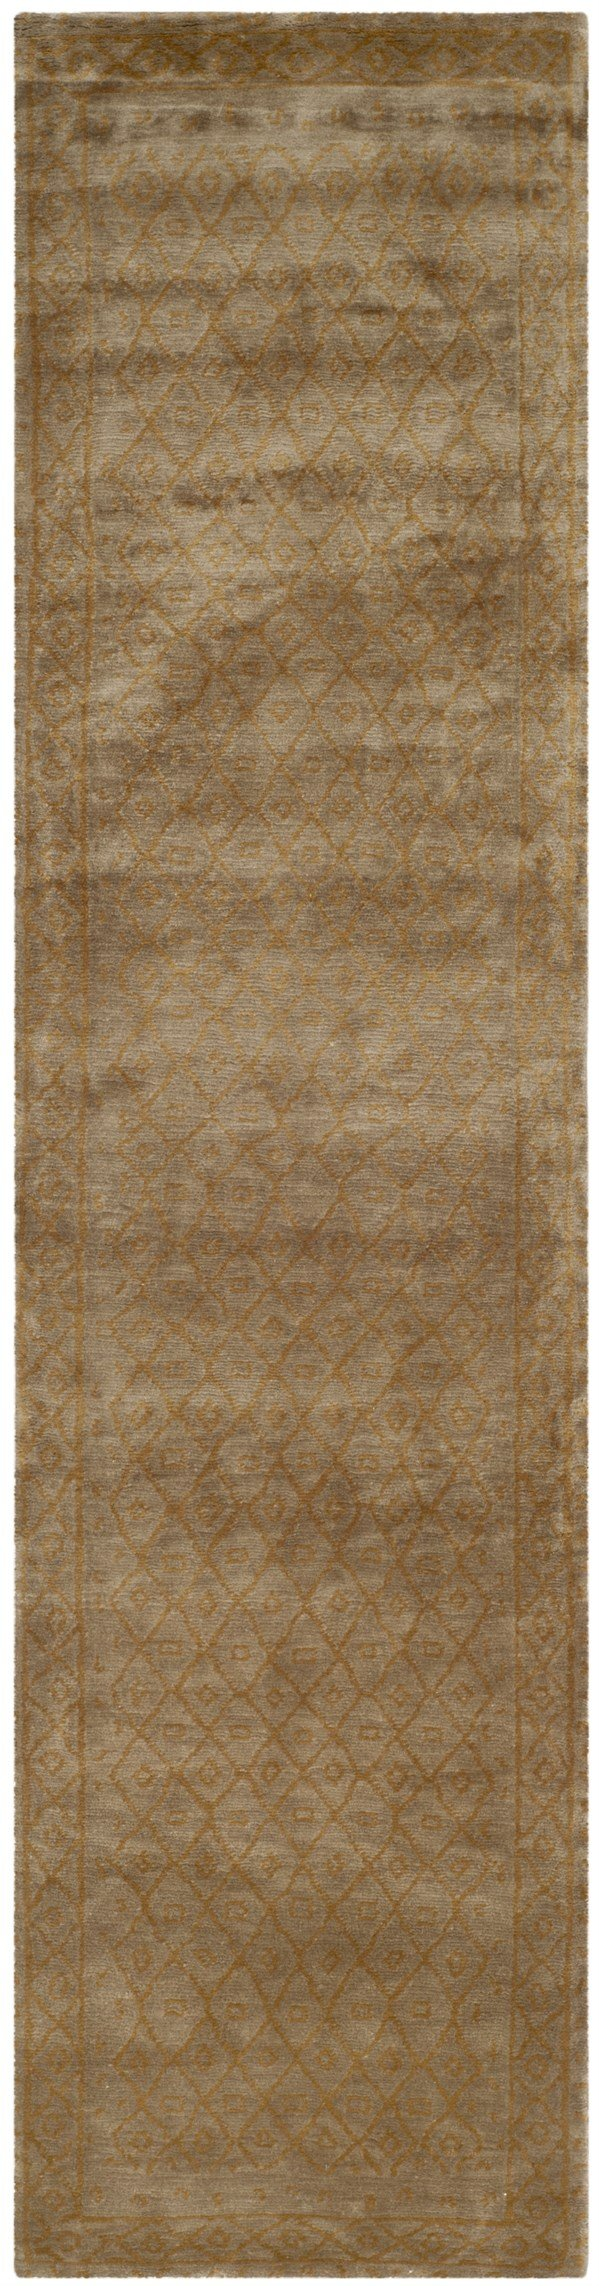 Sage, Gold (A)  Bordered Area Rug